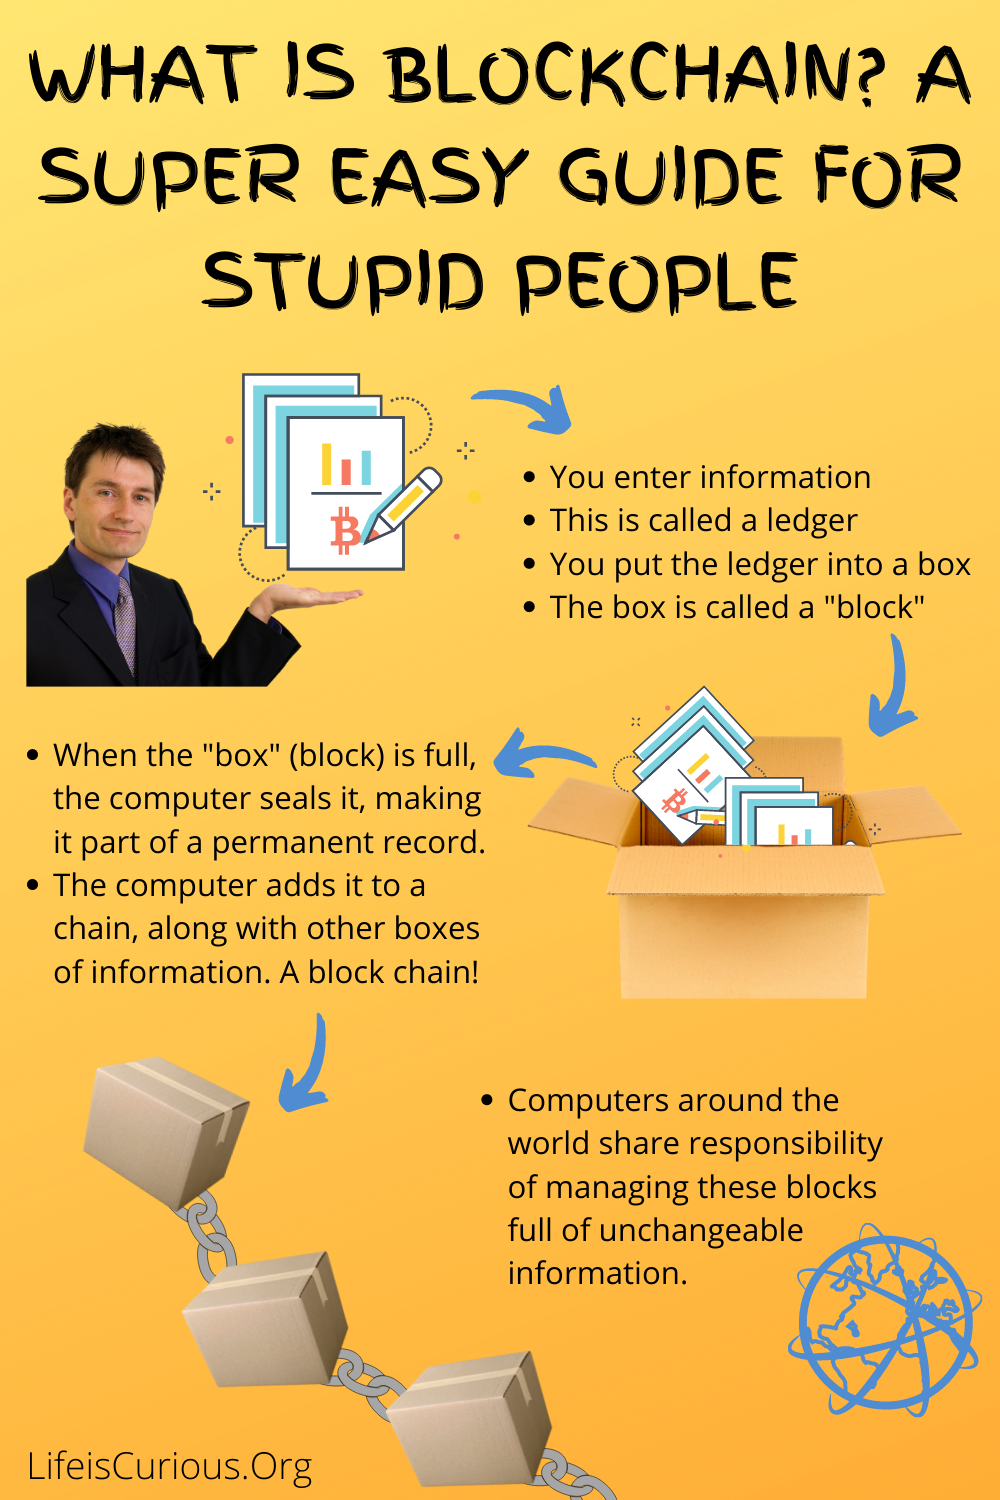 What is blockchain infographic showing it is a ledger entered into a box and a chain